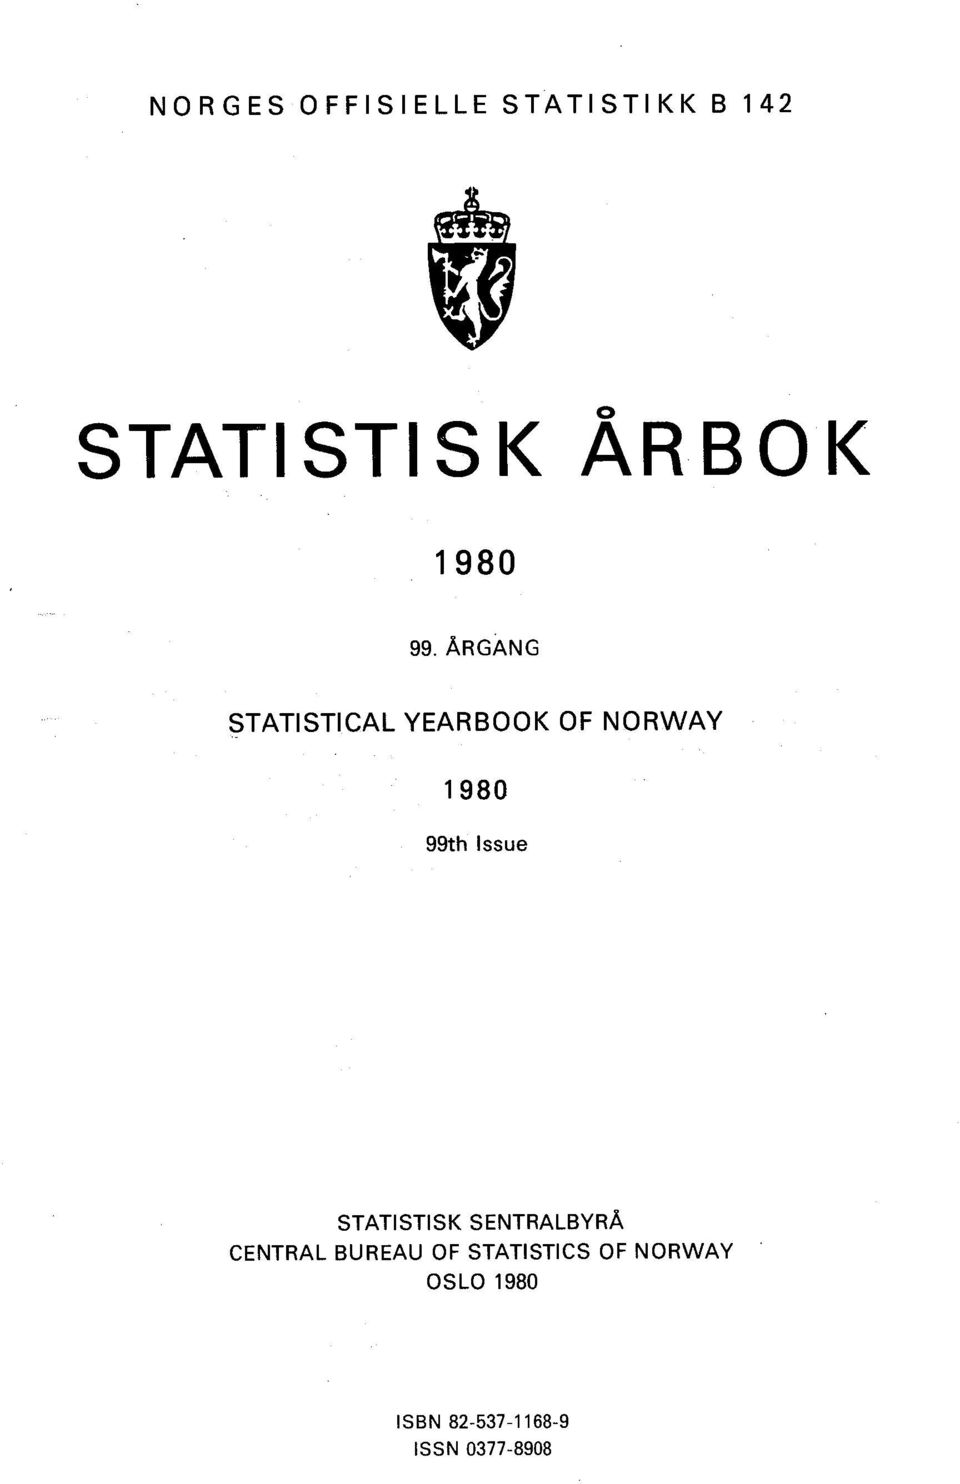 ÅRGANG STATISTICAL YEARBOOK OF NORWAY 1980 99th Issue